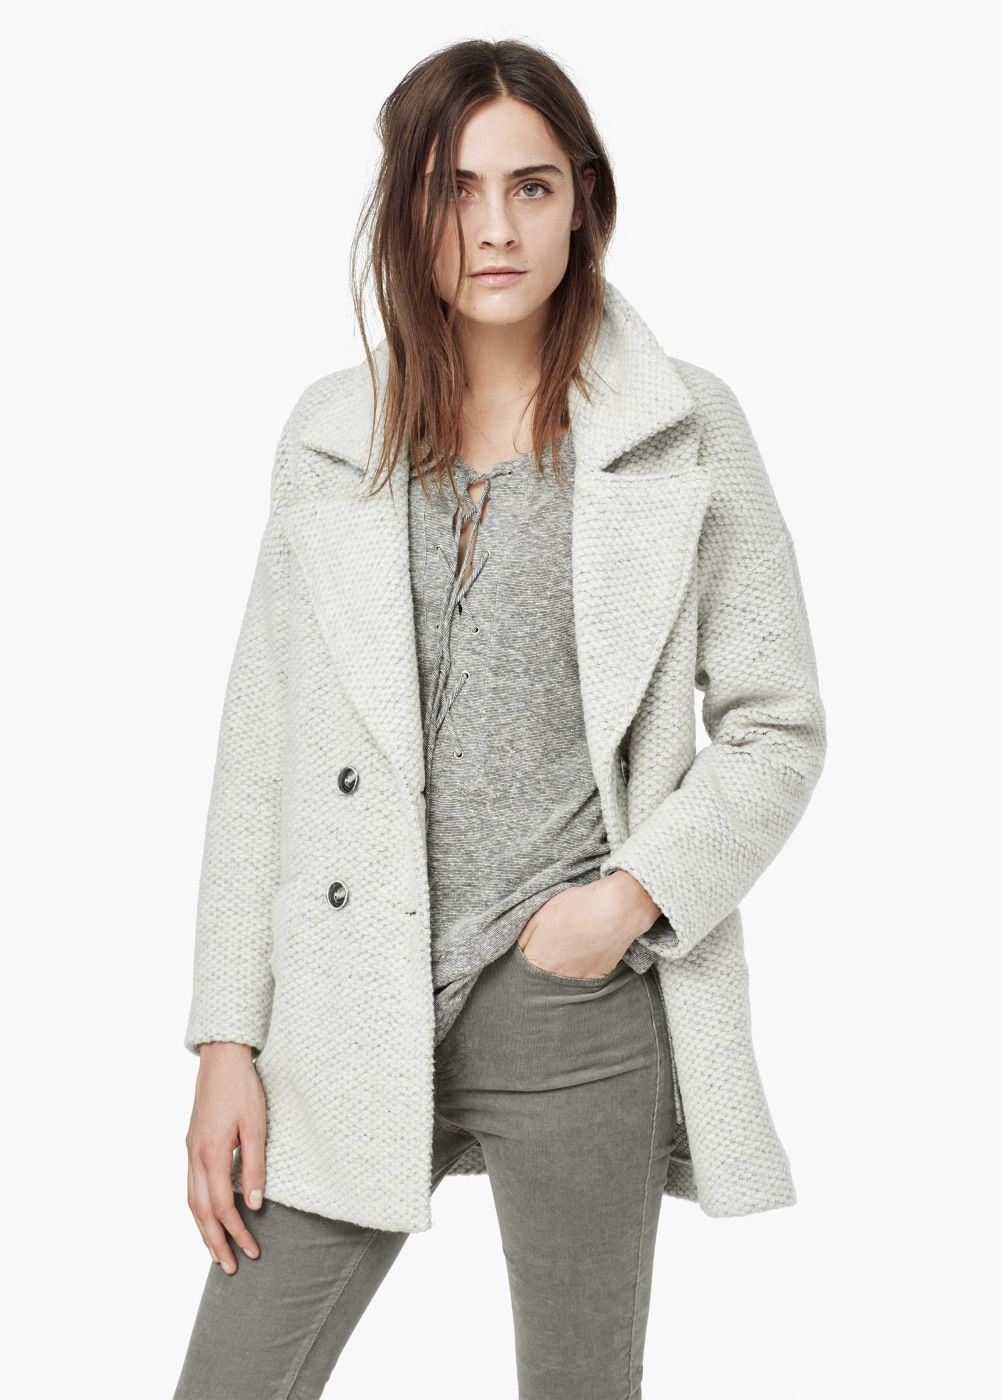 Under  100  Coats   Goop   Pinterest   Manteau, Idées manteau and Laine 89186157ecac